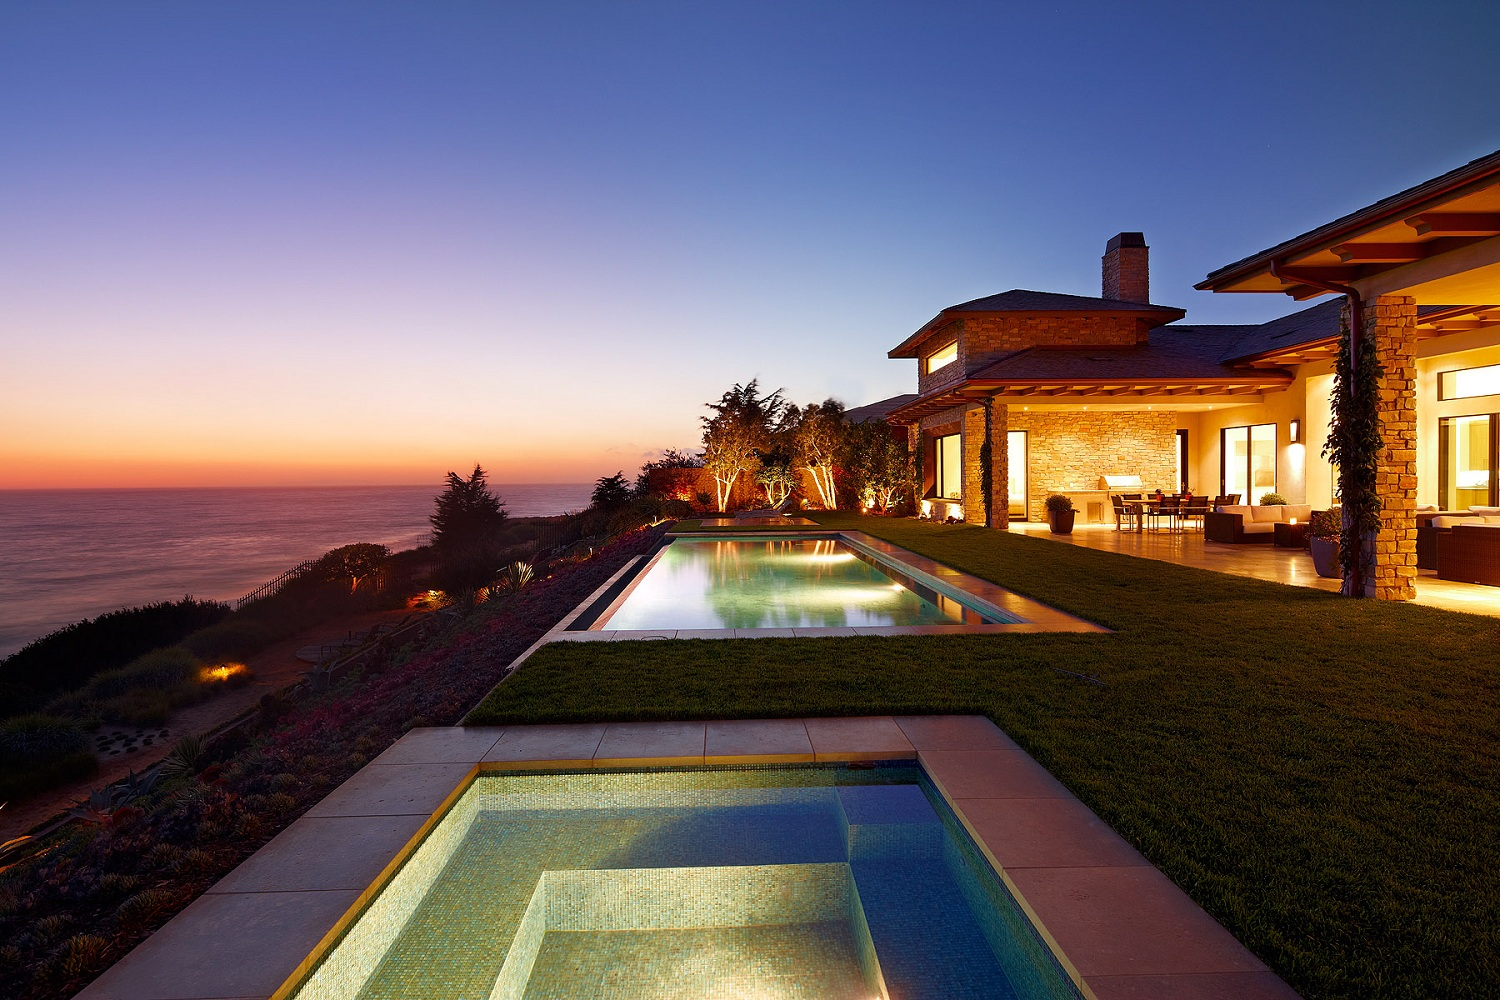 big-houses-with-pools-hd-big-beach-houses-hd-wallpapers-free-desktop-wallpapers-hd-genovic